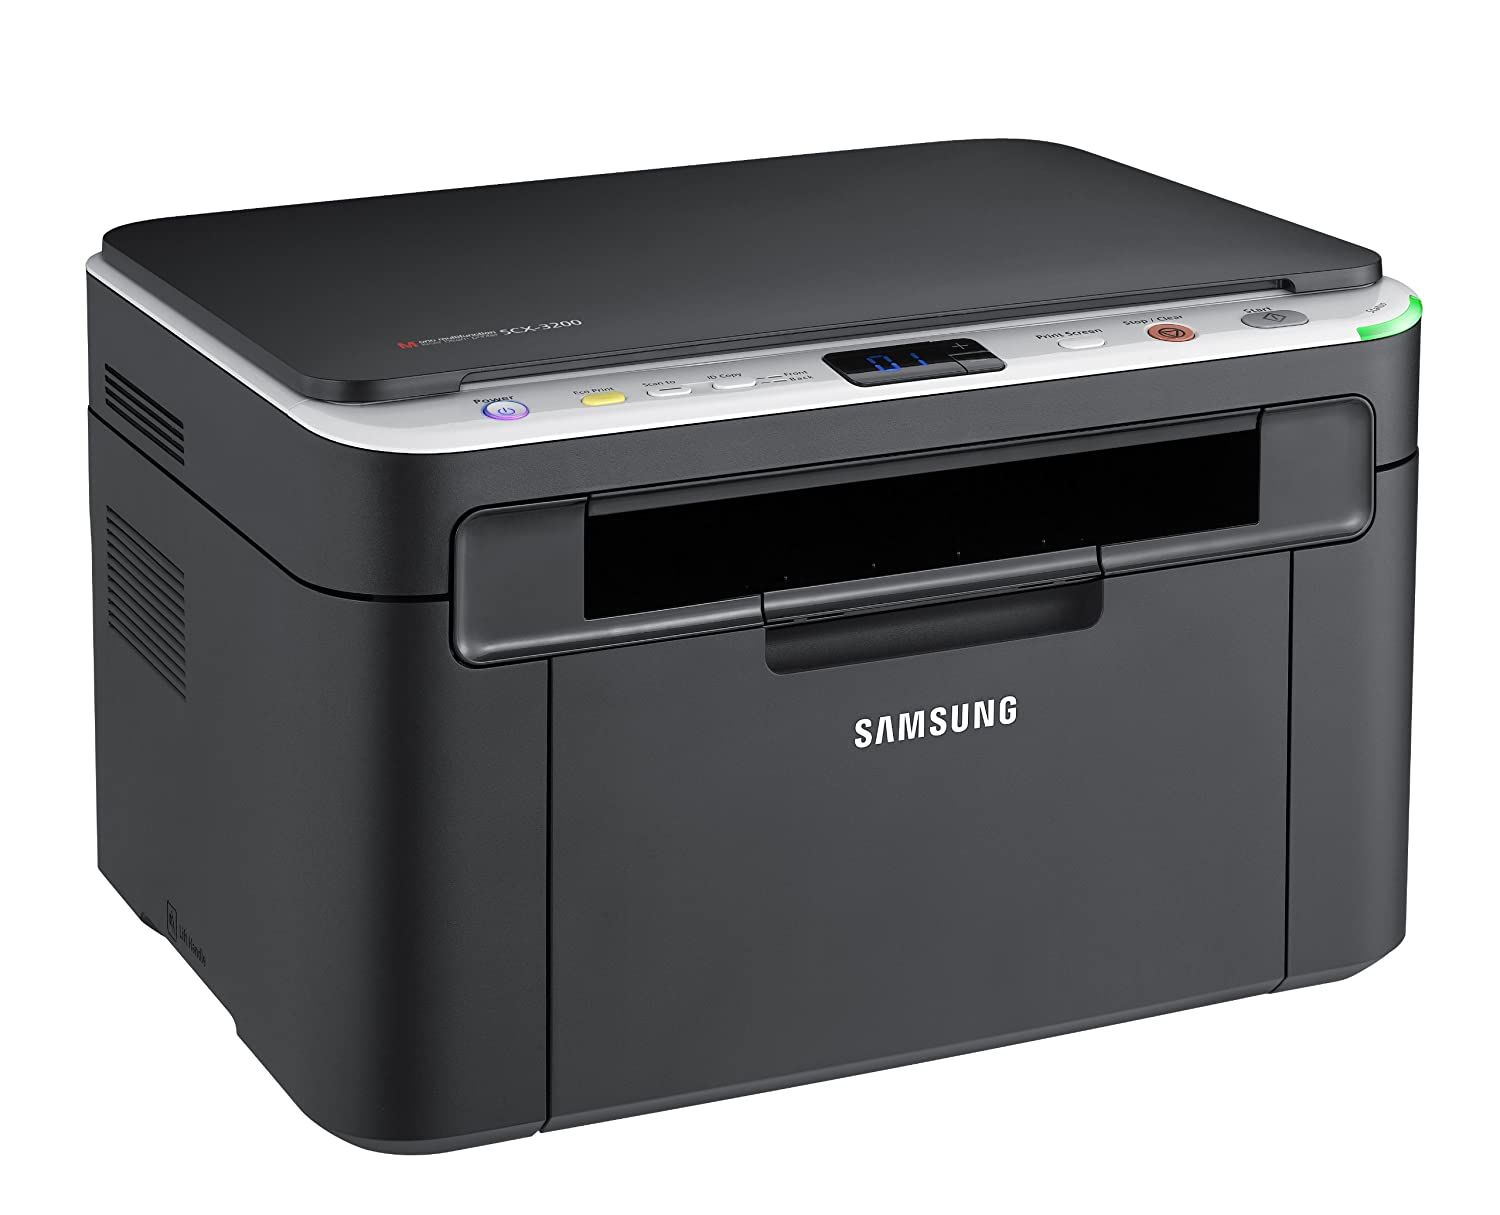 Samsung SCX-6x22 Series Printer 64x